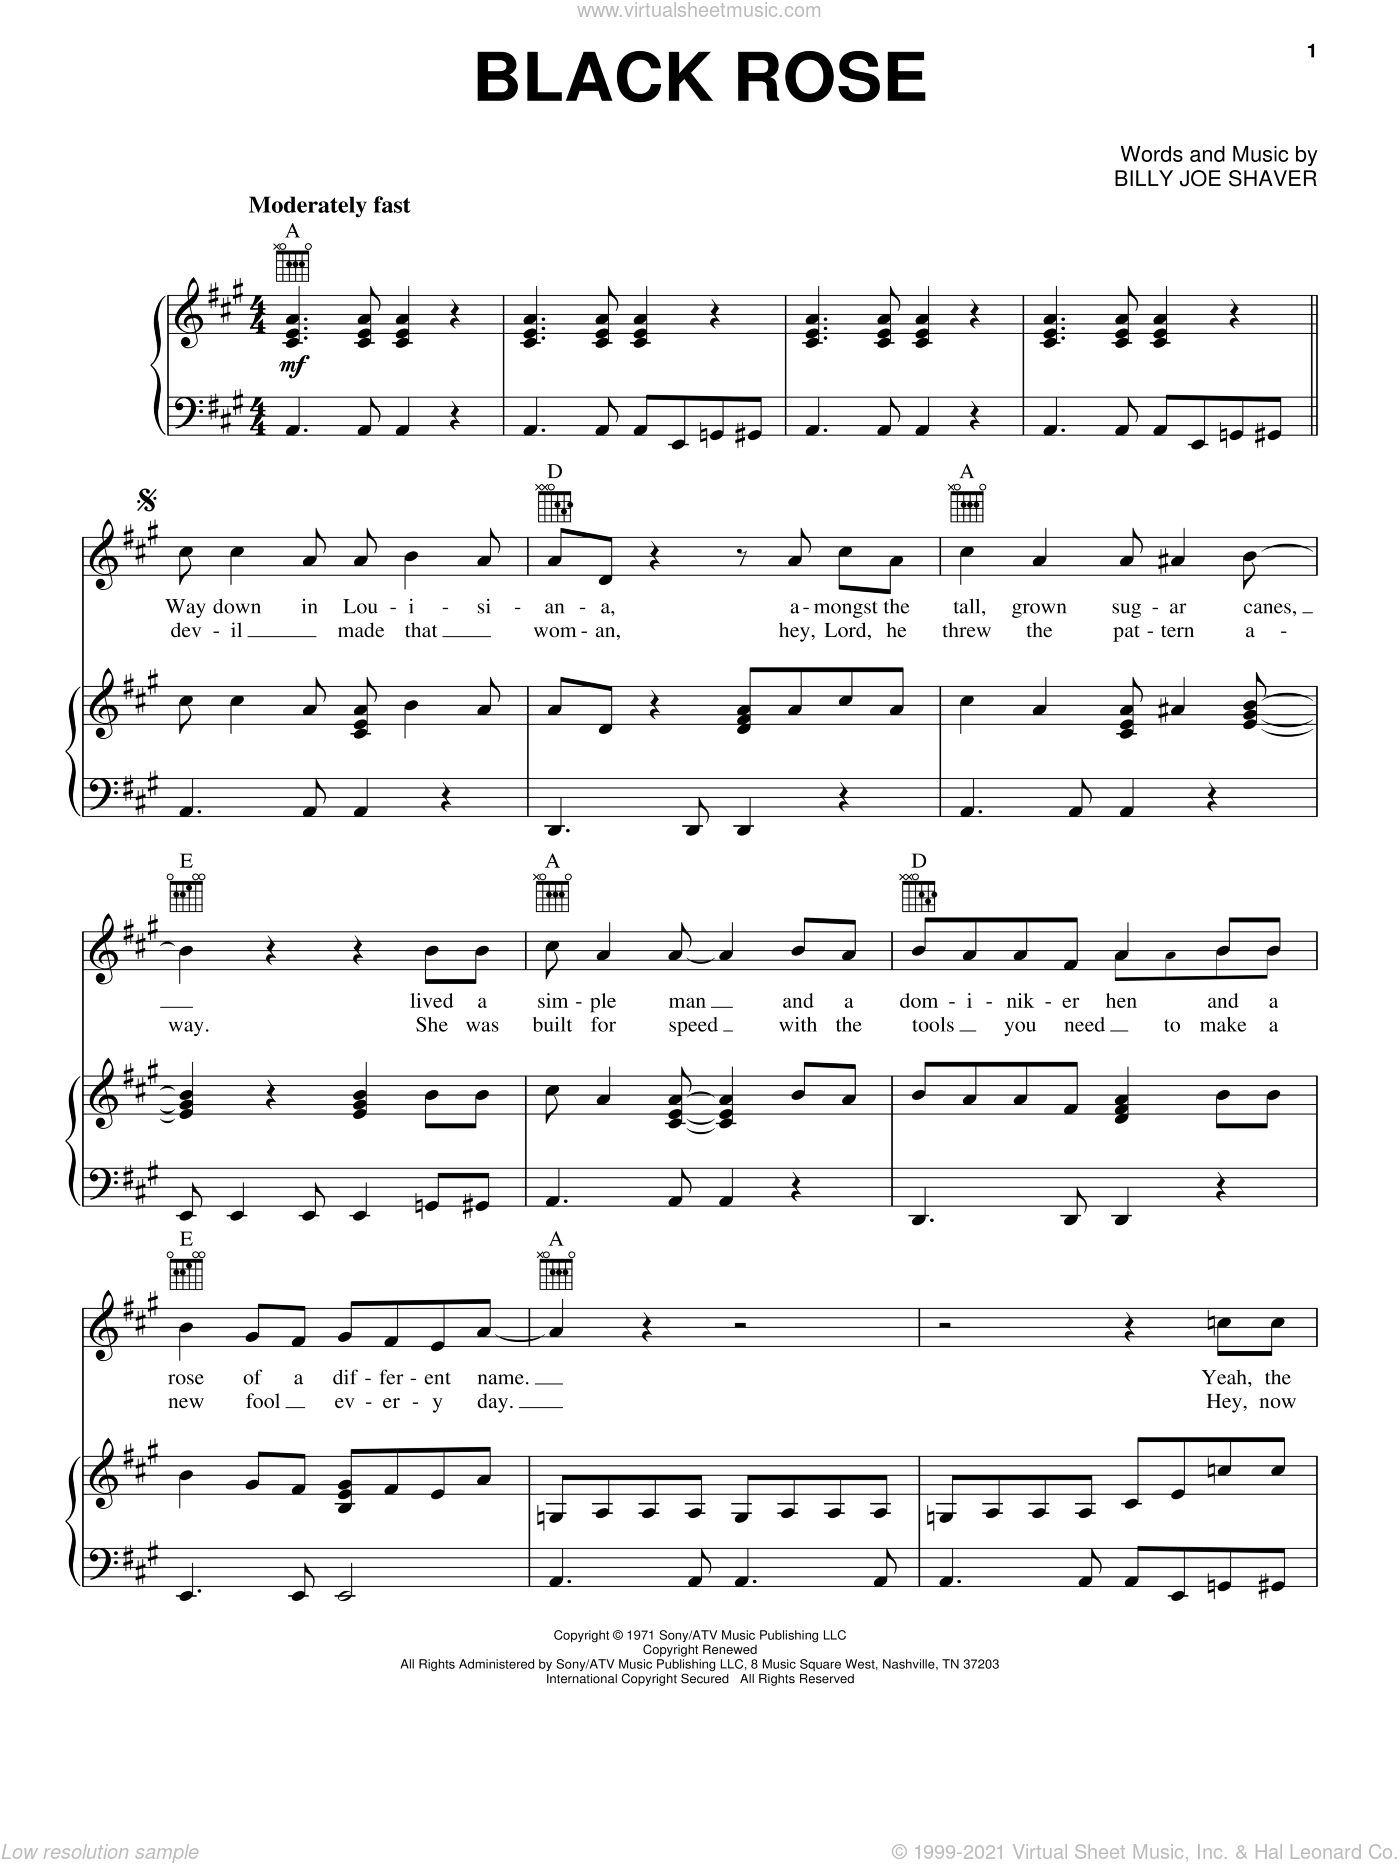 Black Rose sheet music for voice, piano or guitar by Billy Joe Shaver